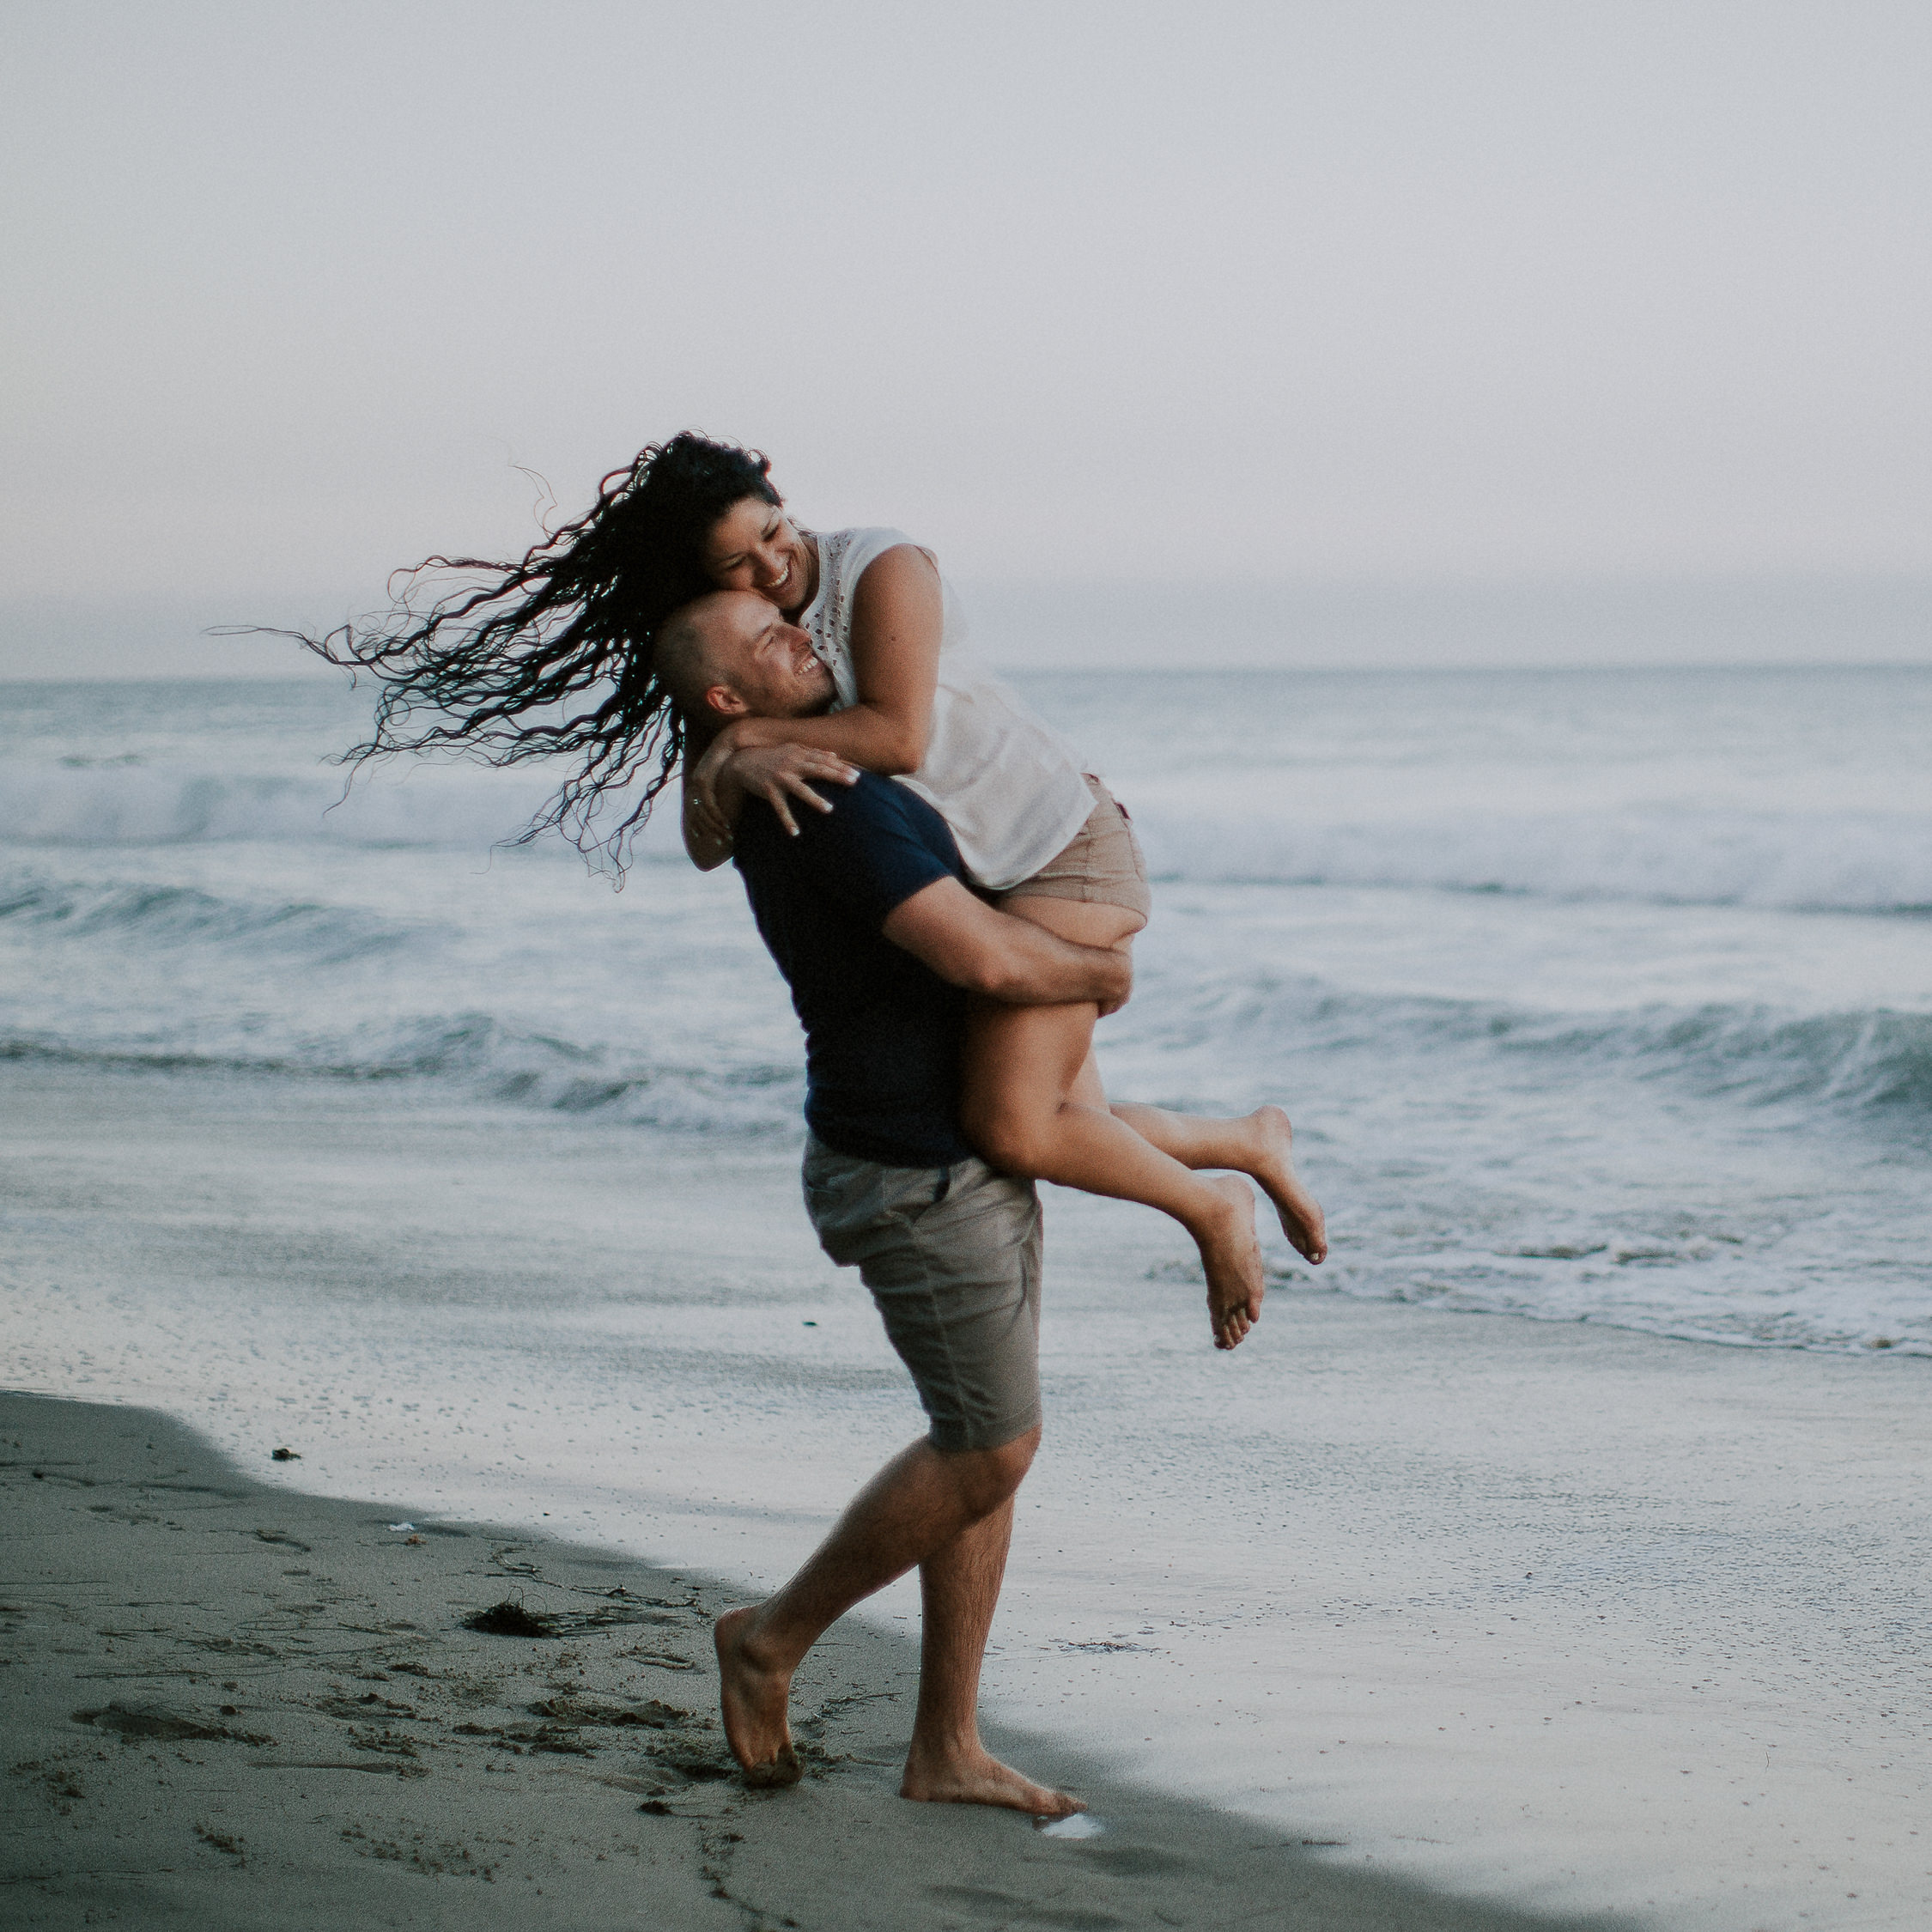 alex + brianna | Malibu Engagement Session